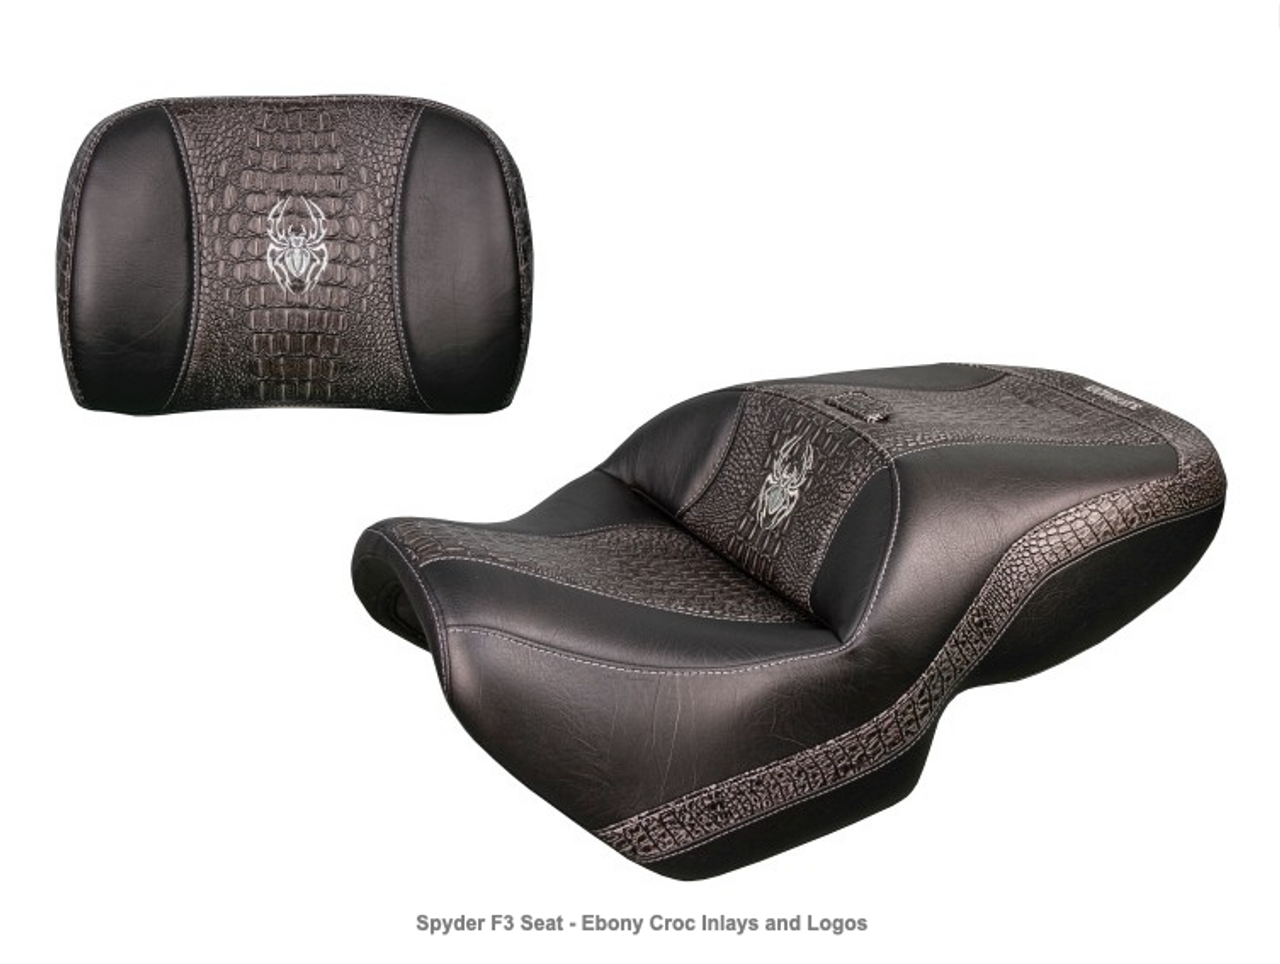 Ultimate Seat, Can Am Spyder F3 (2015 - Present) Spyder F3 Seat - Ebony Croc Inlays and Logos